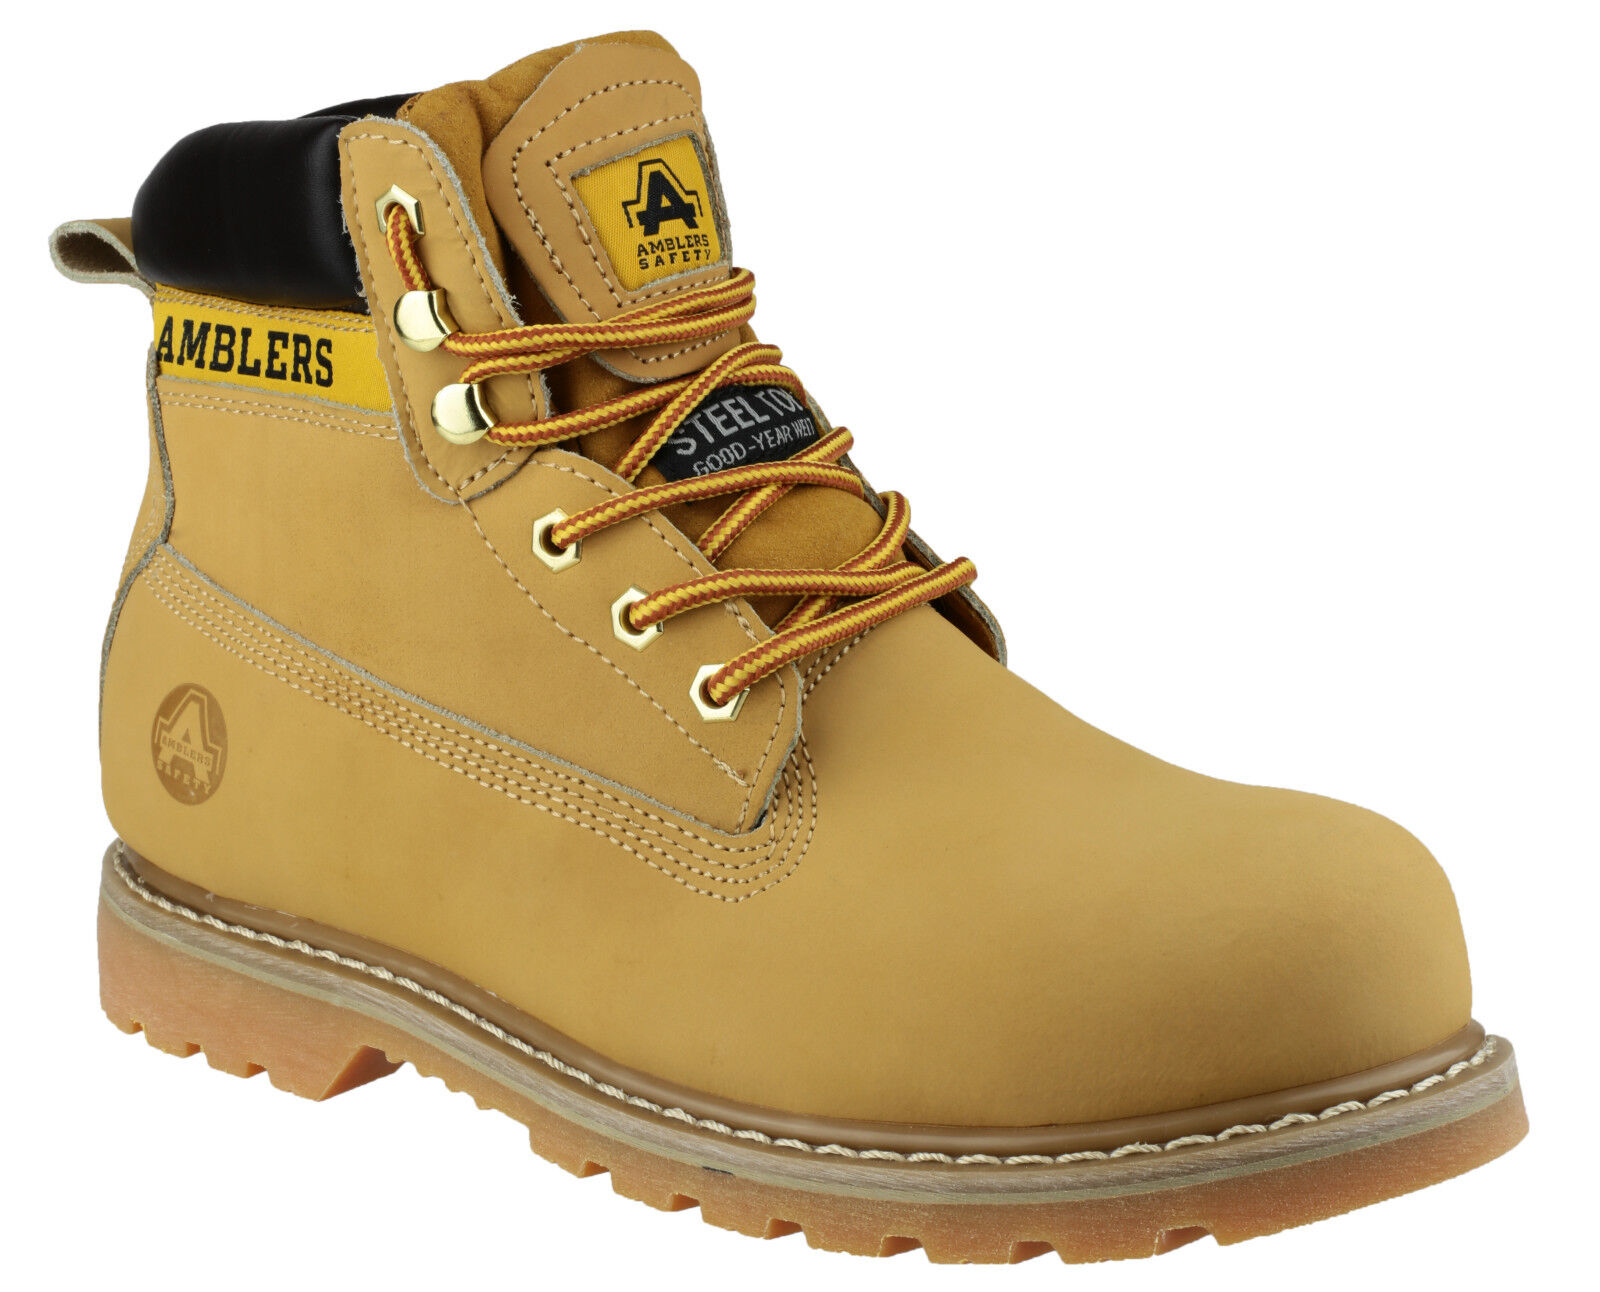 Amblers FS7 Steel Toe Capped Industrial Mens Boys Work Stiefel UK4-13